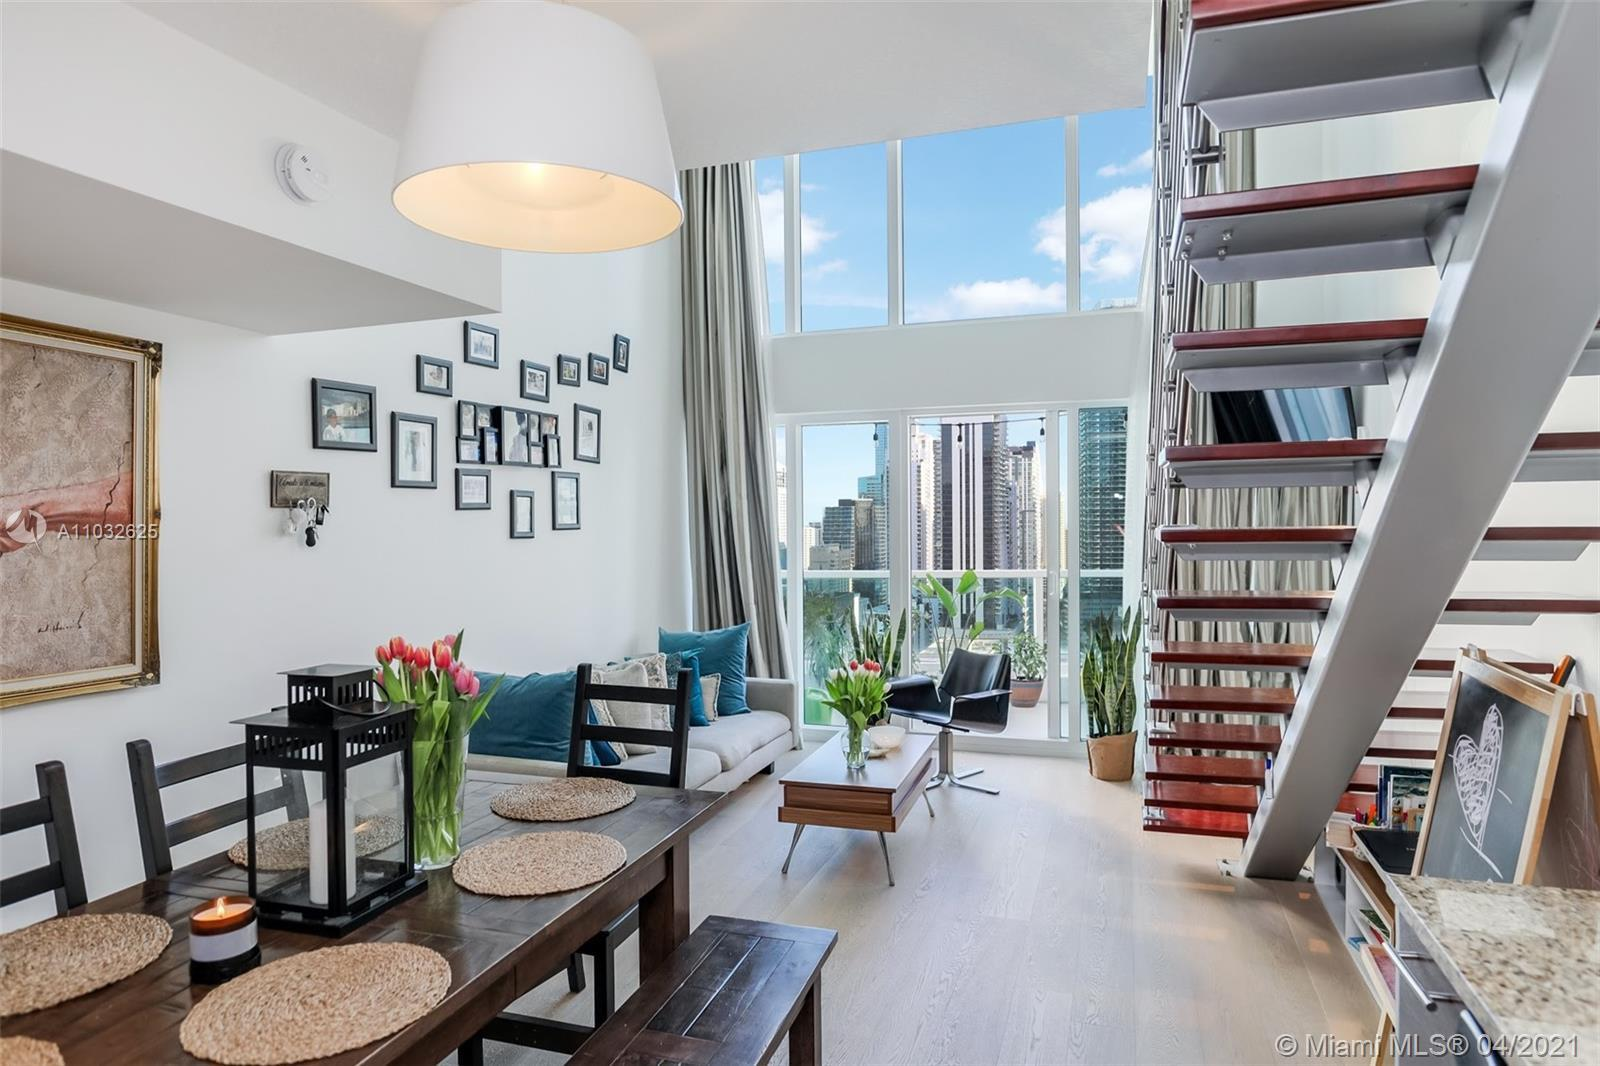 Tenant occupied until July 16th.  Best Location in Brickell, this unit has custom made curtains, the